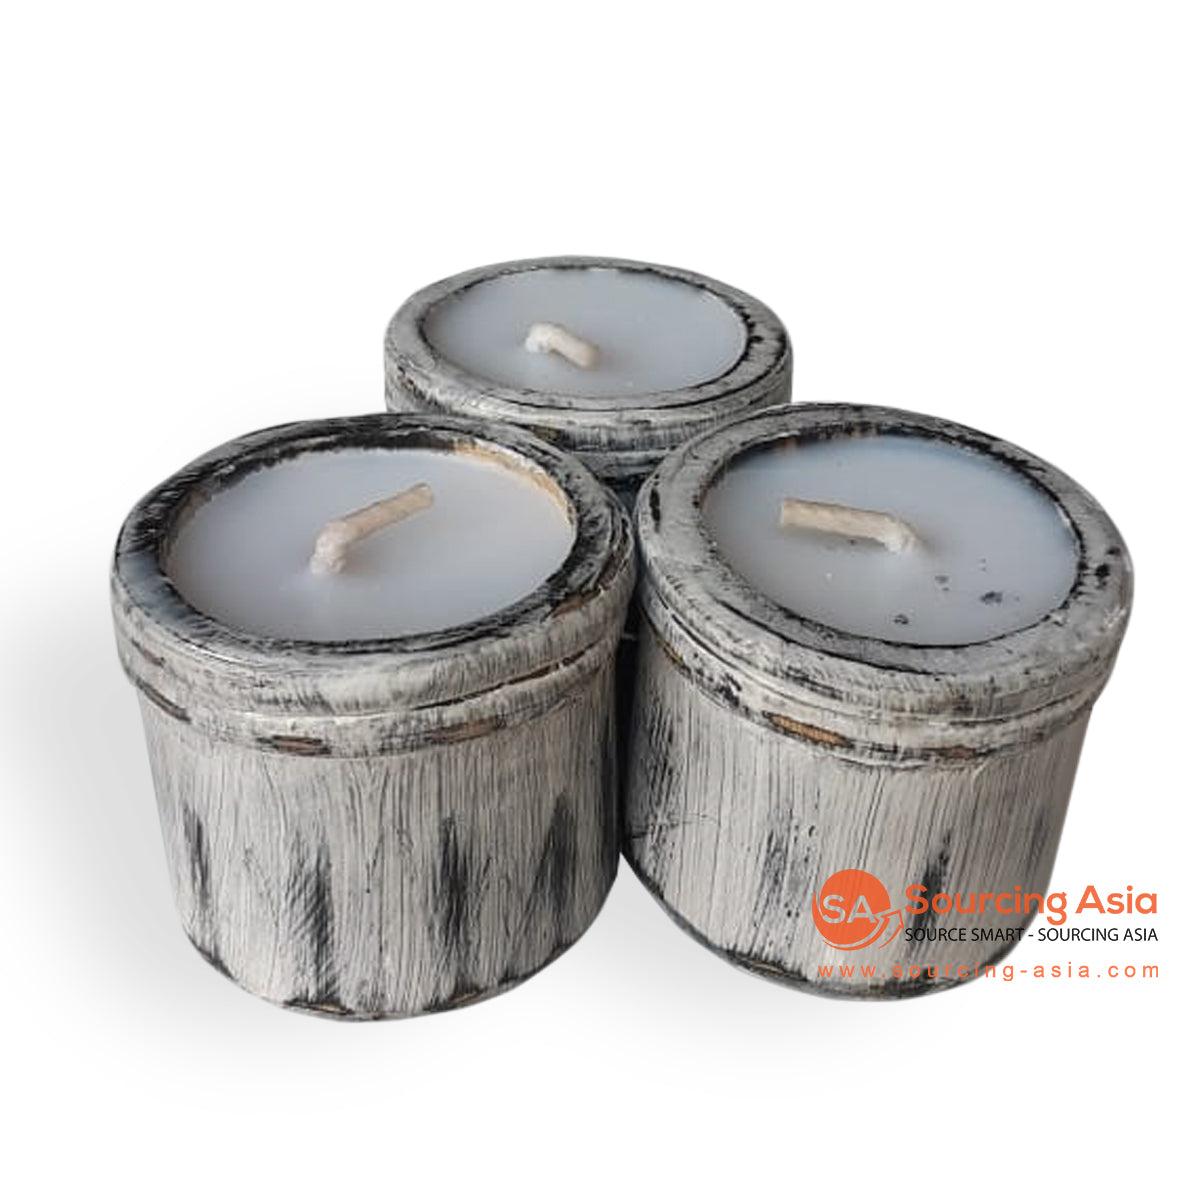 BSC019-2 SET OF 3 CANDLE HOLDER